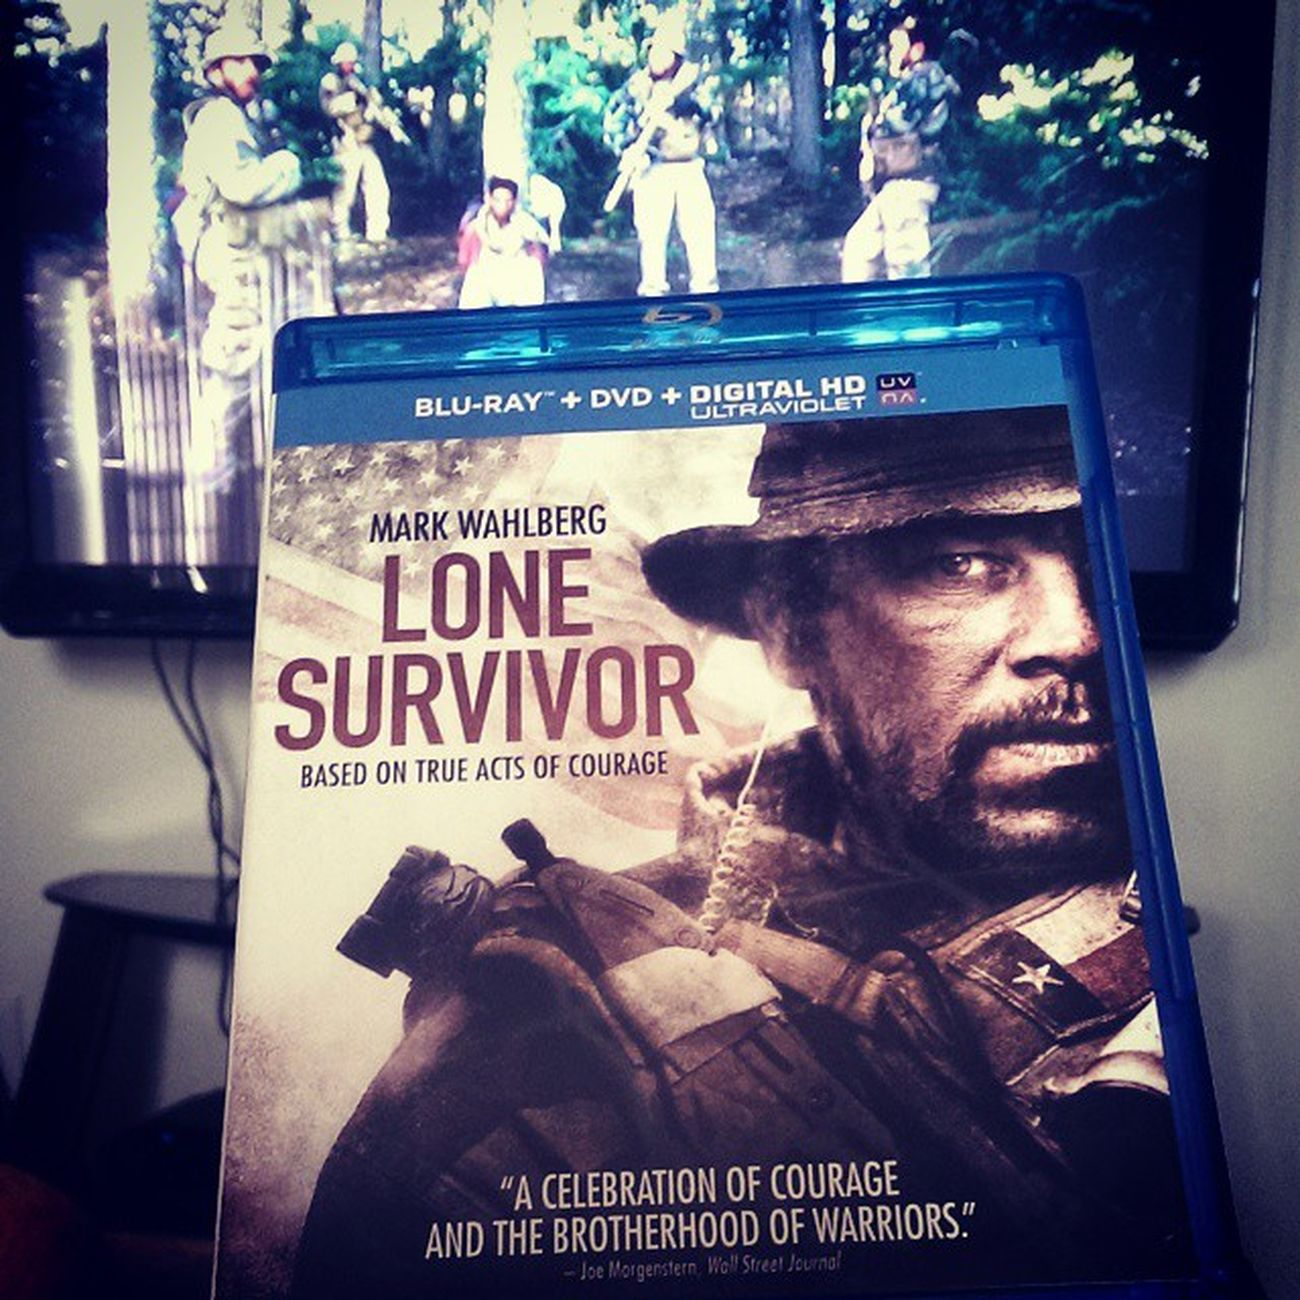 Finally purchased this after seeing it in theaters awhile ago. Amazing story of courage... Murph Marcusluttrell Navy Seal LoneSurvivor 2014